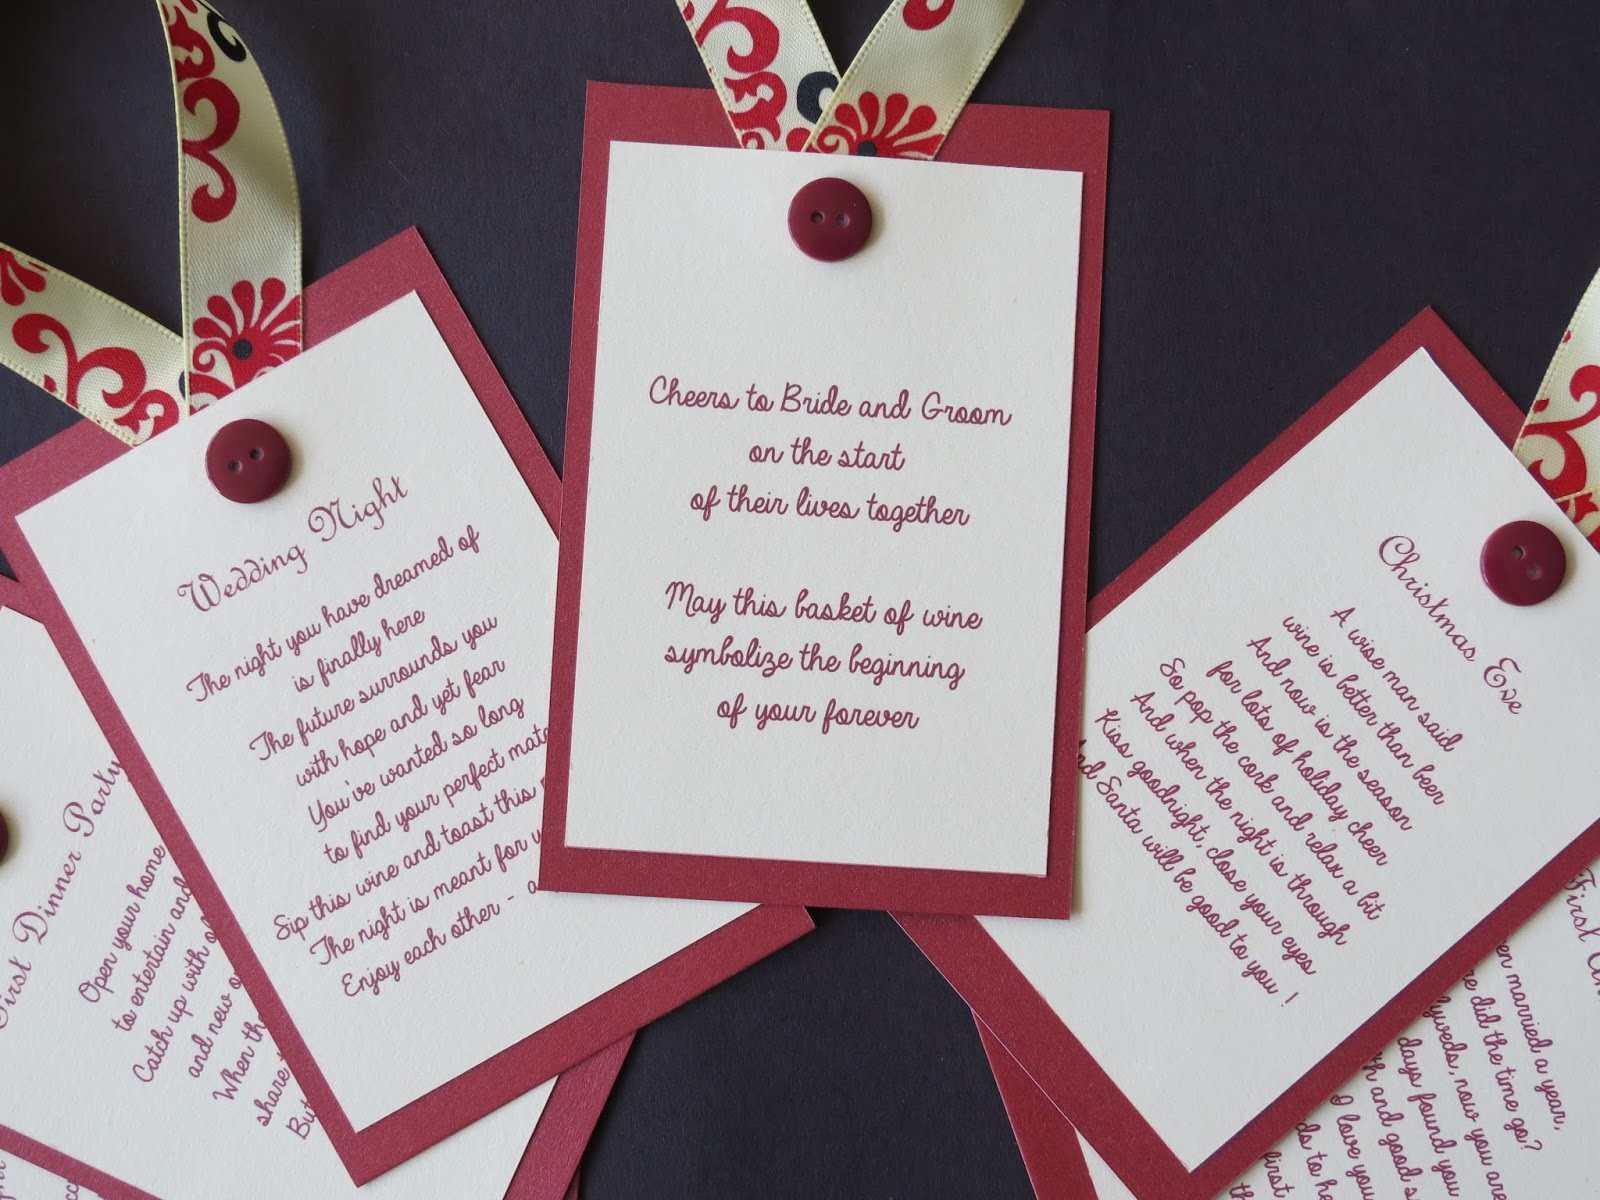 Wine Tags For Poem Basket Bridal Shower Perfect Gift